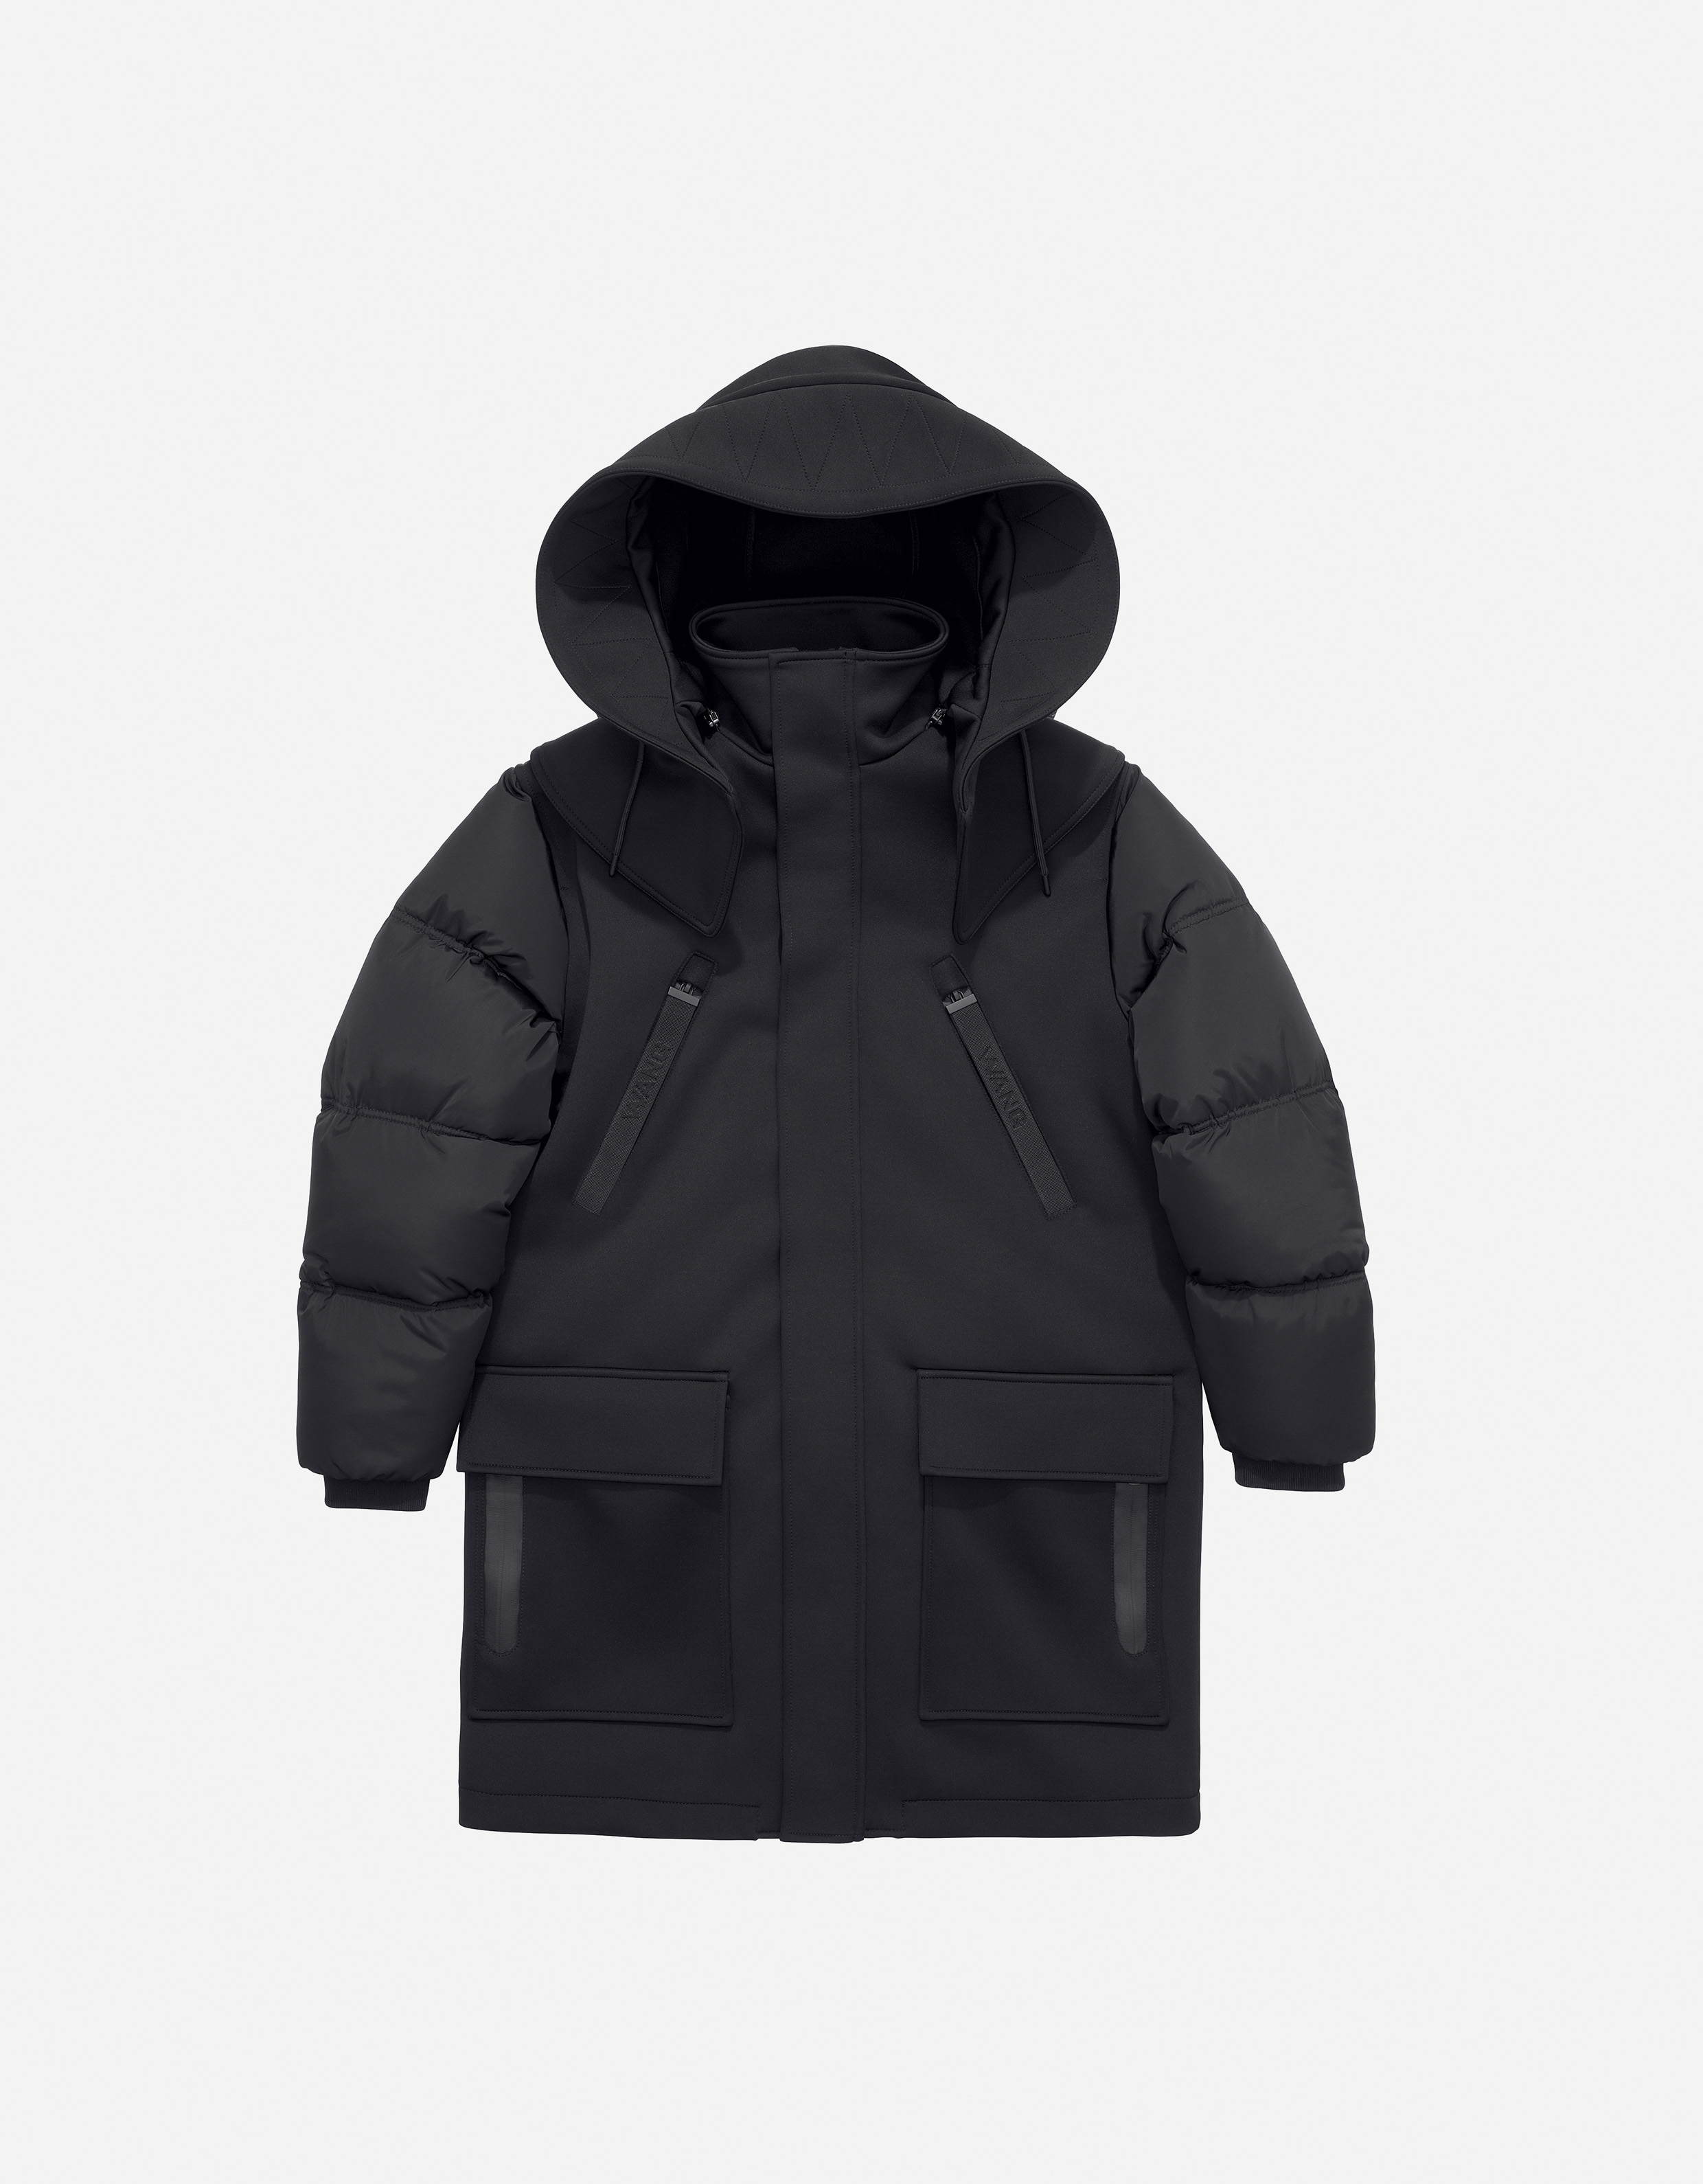 Alexander-Wang-X-HM-puffed-sleeve-hooded-coat-black